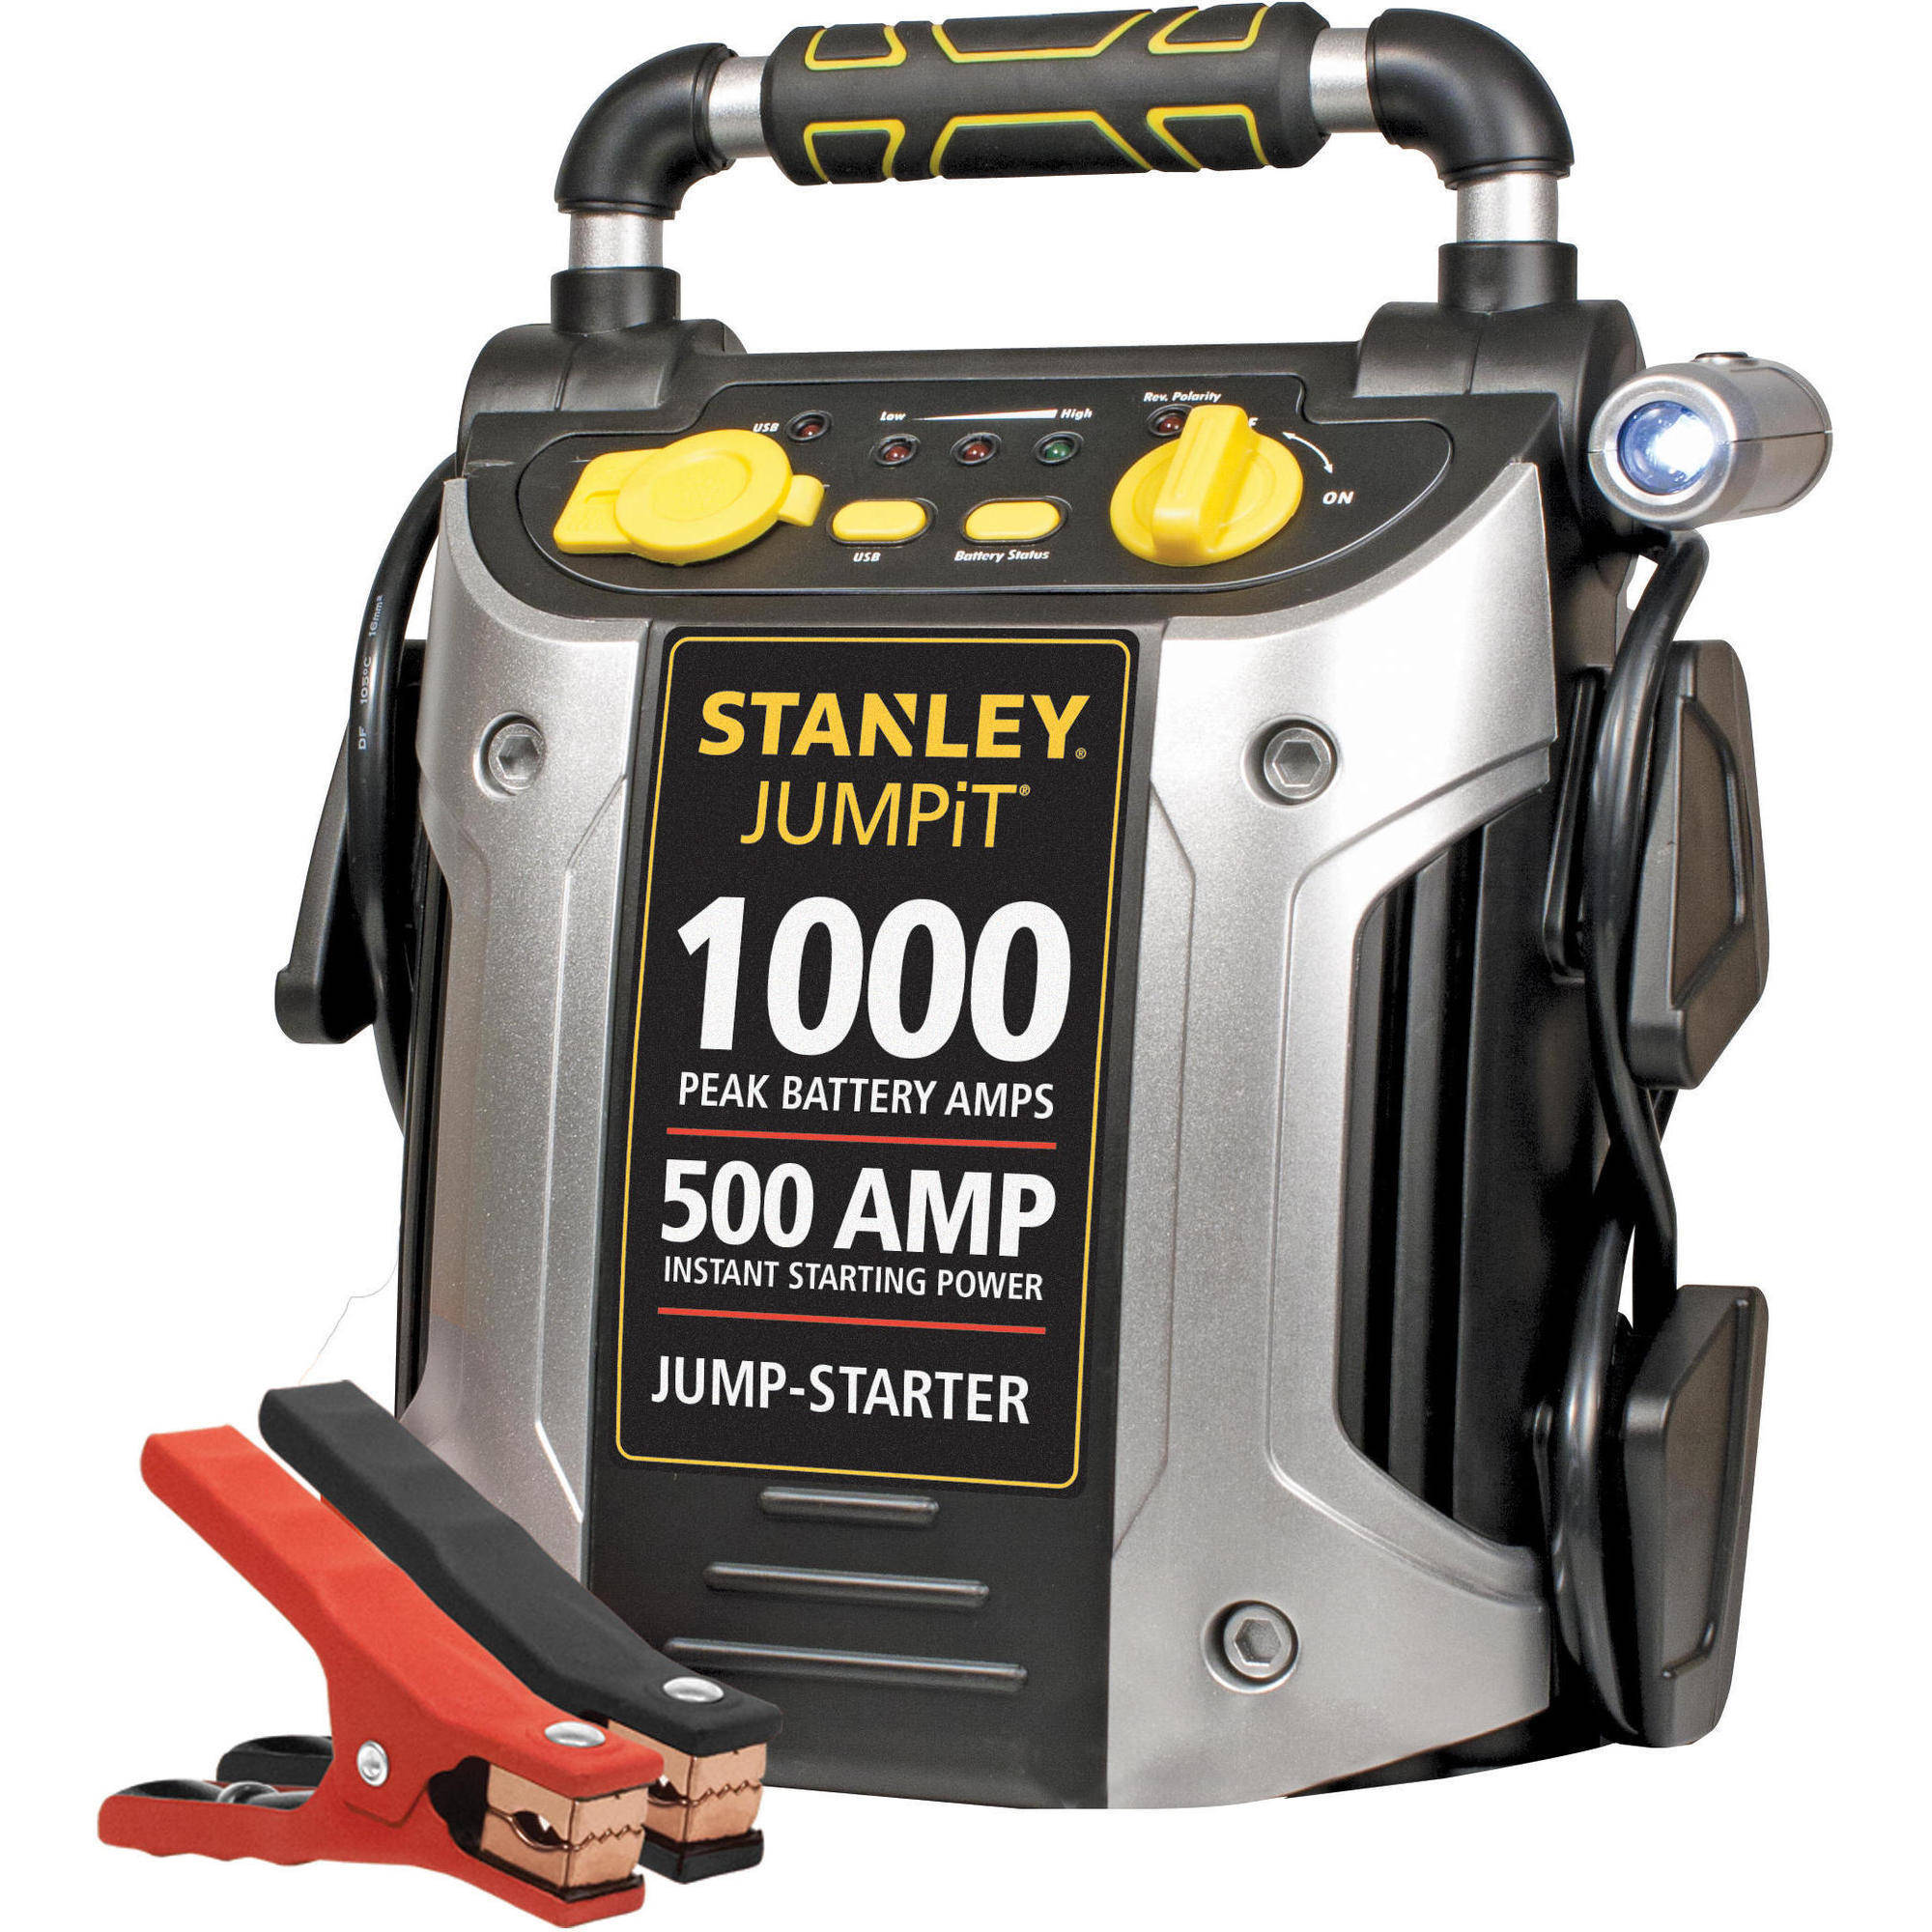 Duralast 10 amp battery charger instructions